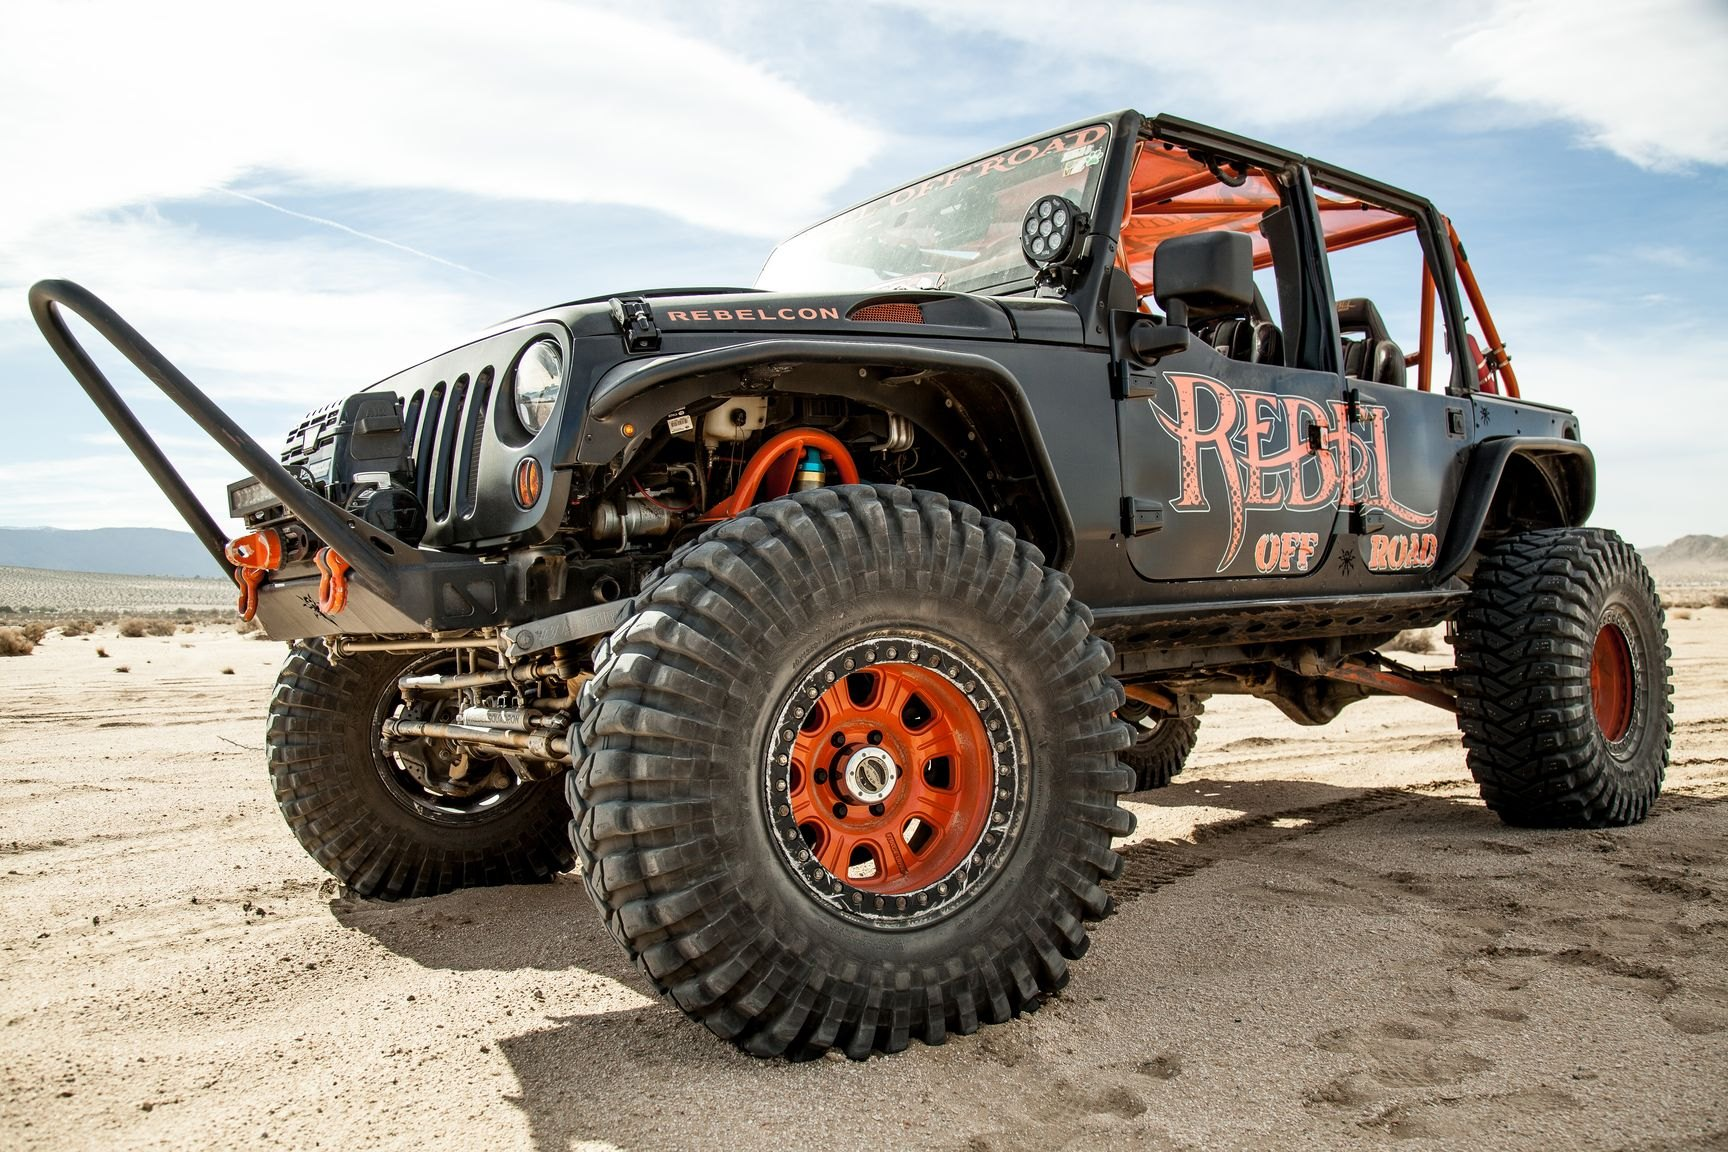 hight resolution of black lifted jeep wrangler rebelcon with custom front bumper photo by rebel off road